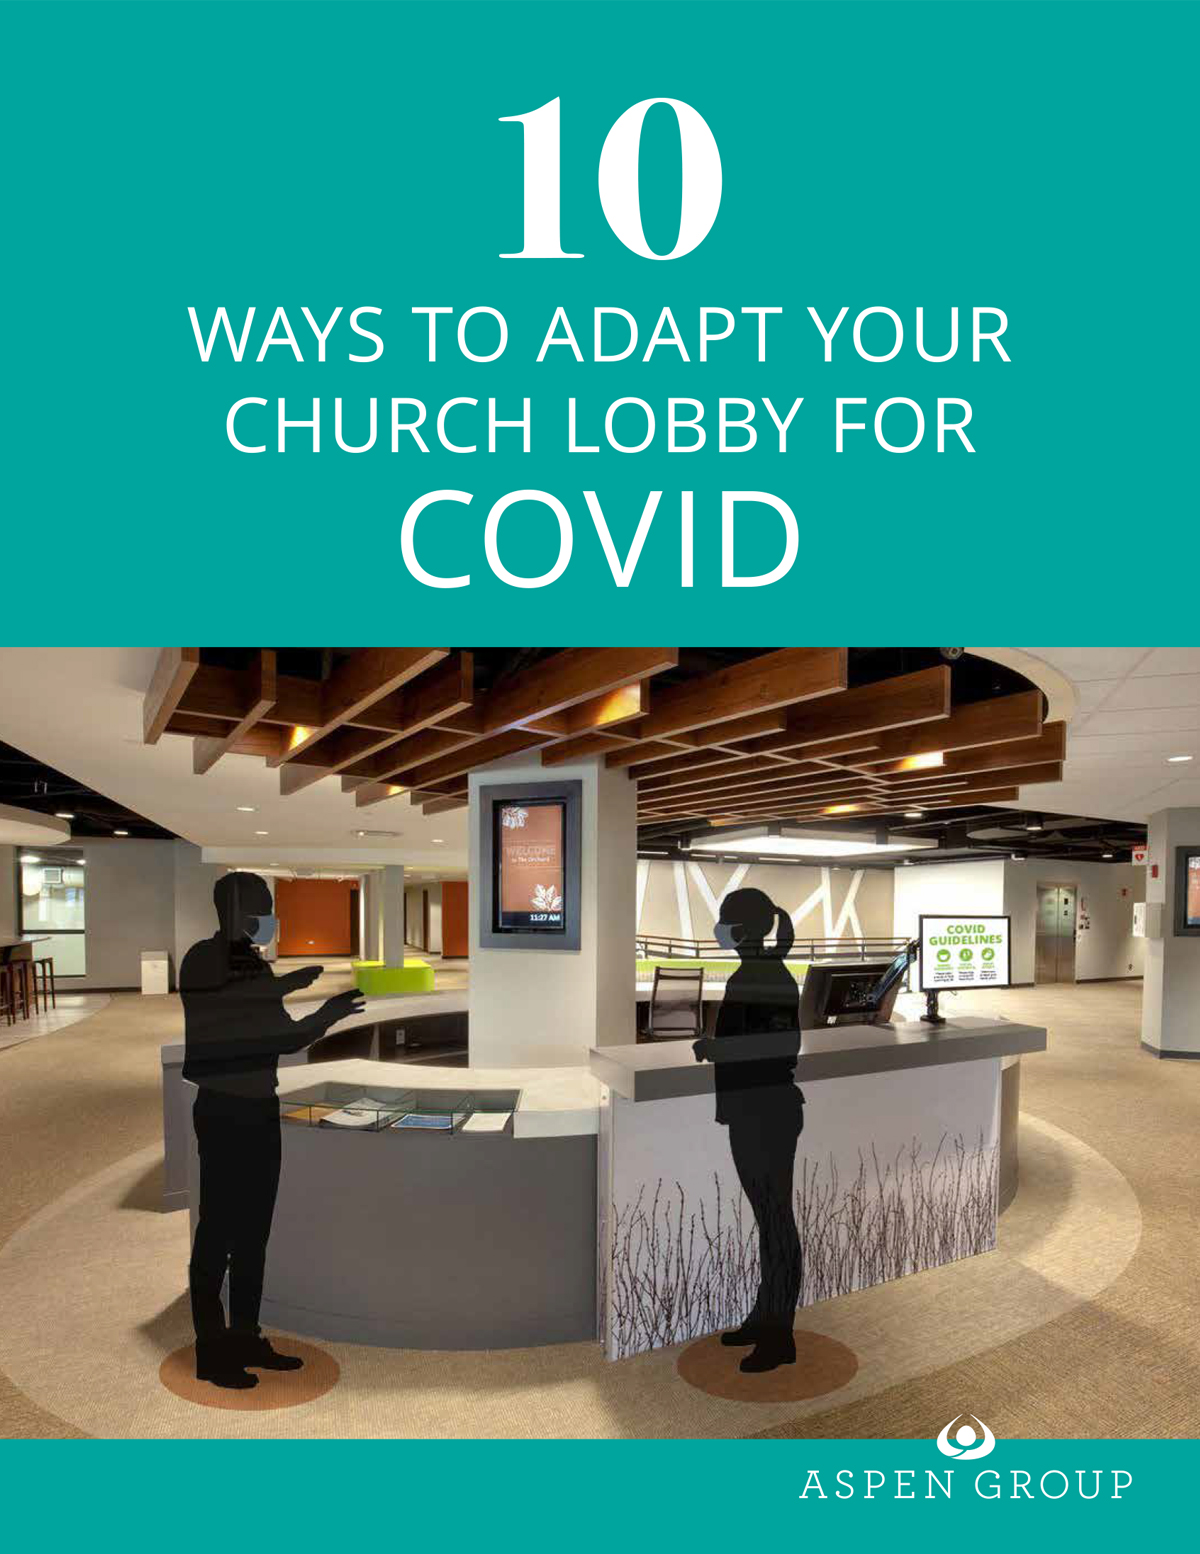 ten-ways-to-adapt-your-church-lobby-covid-cover-fnl